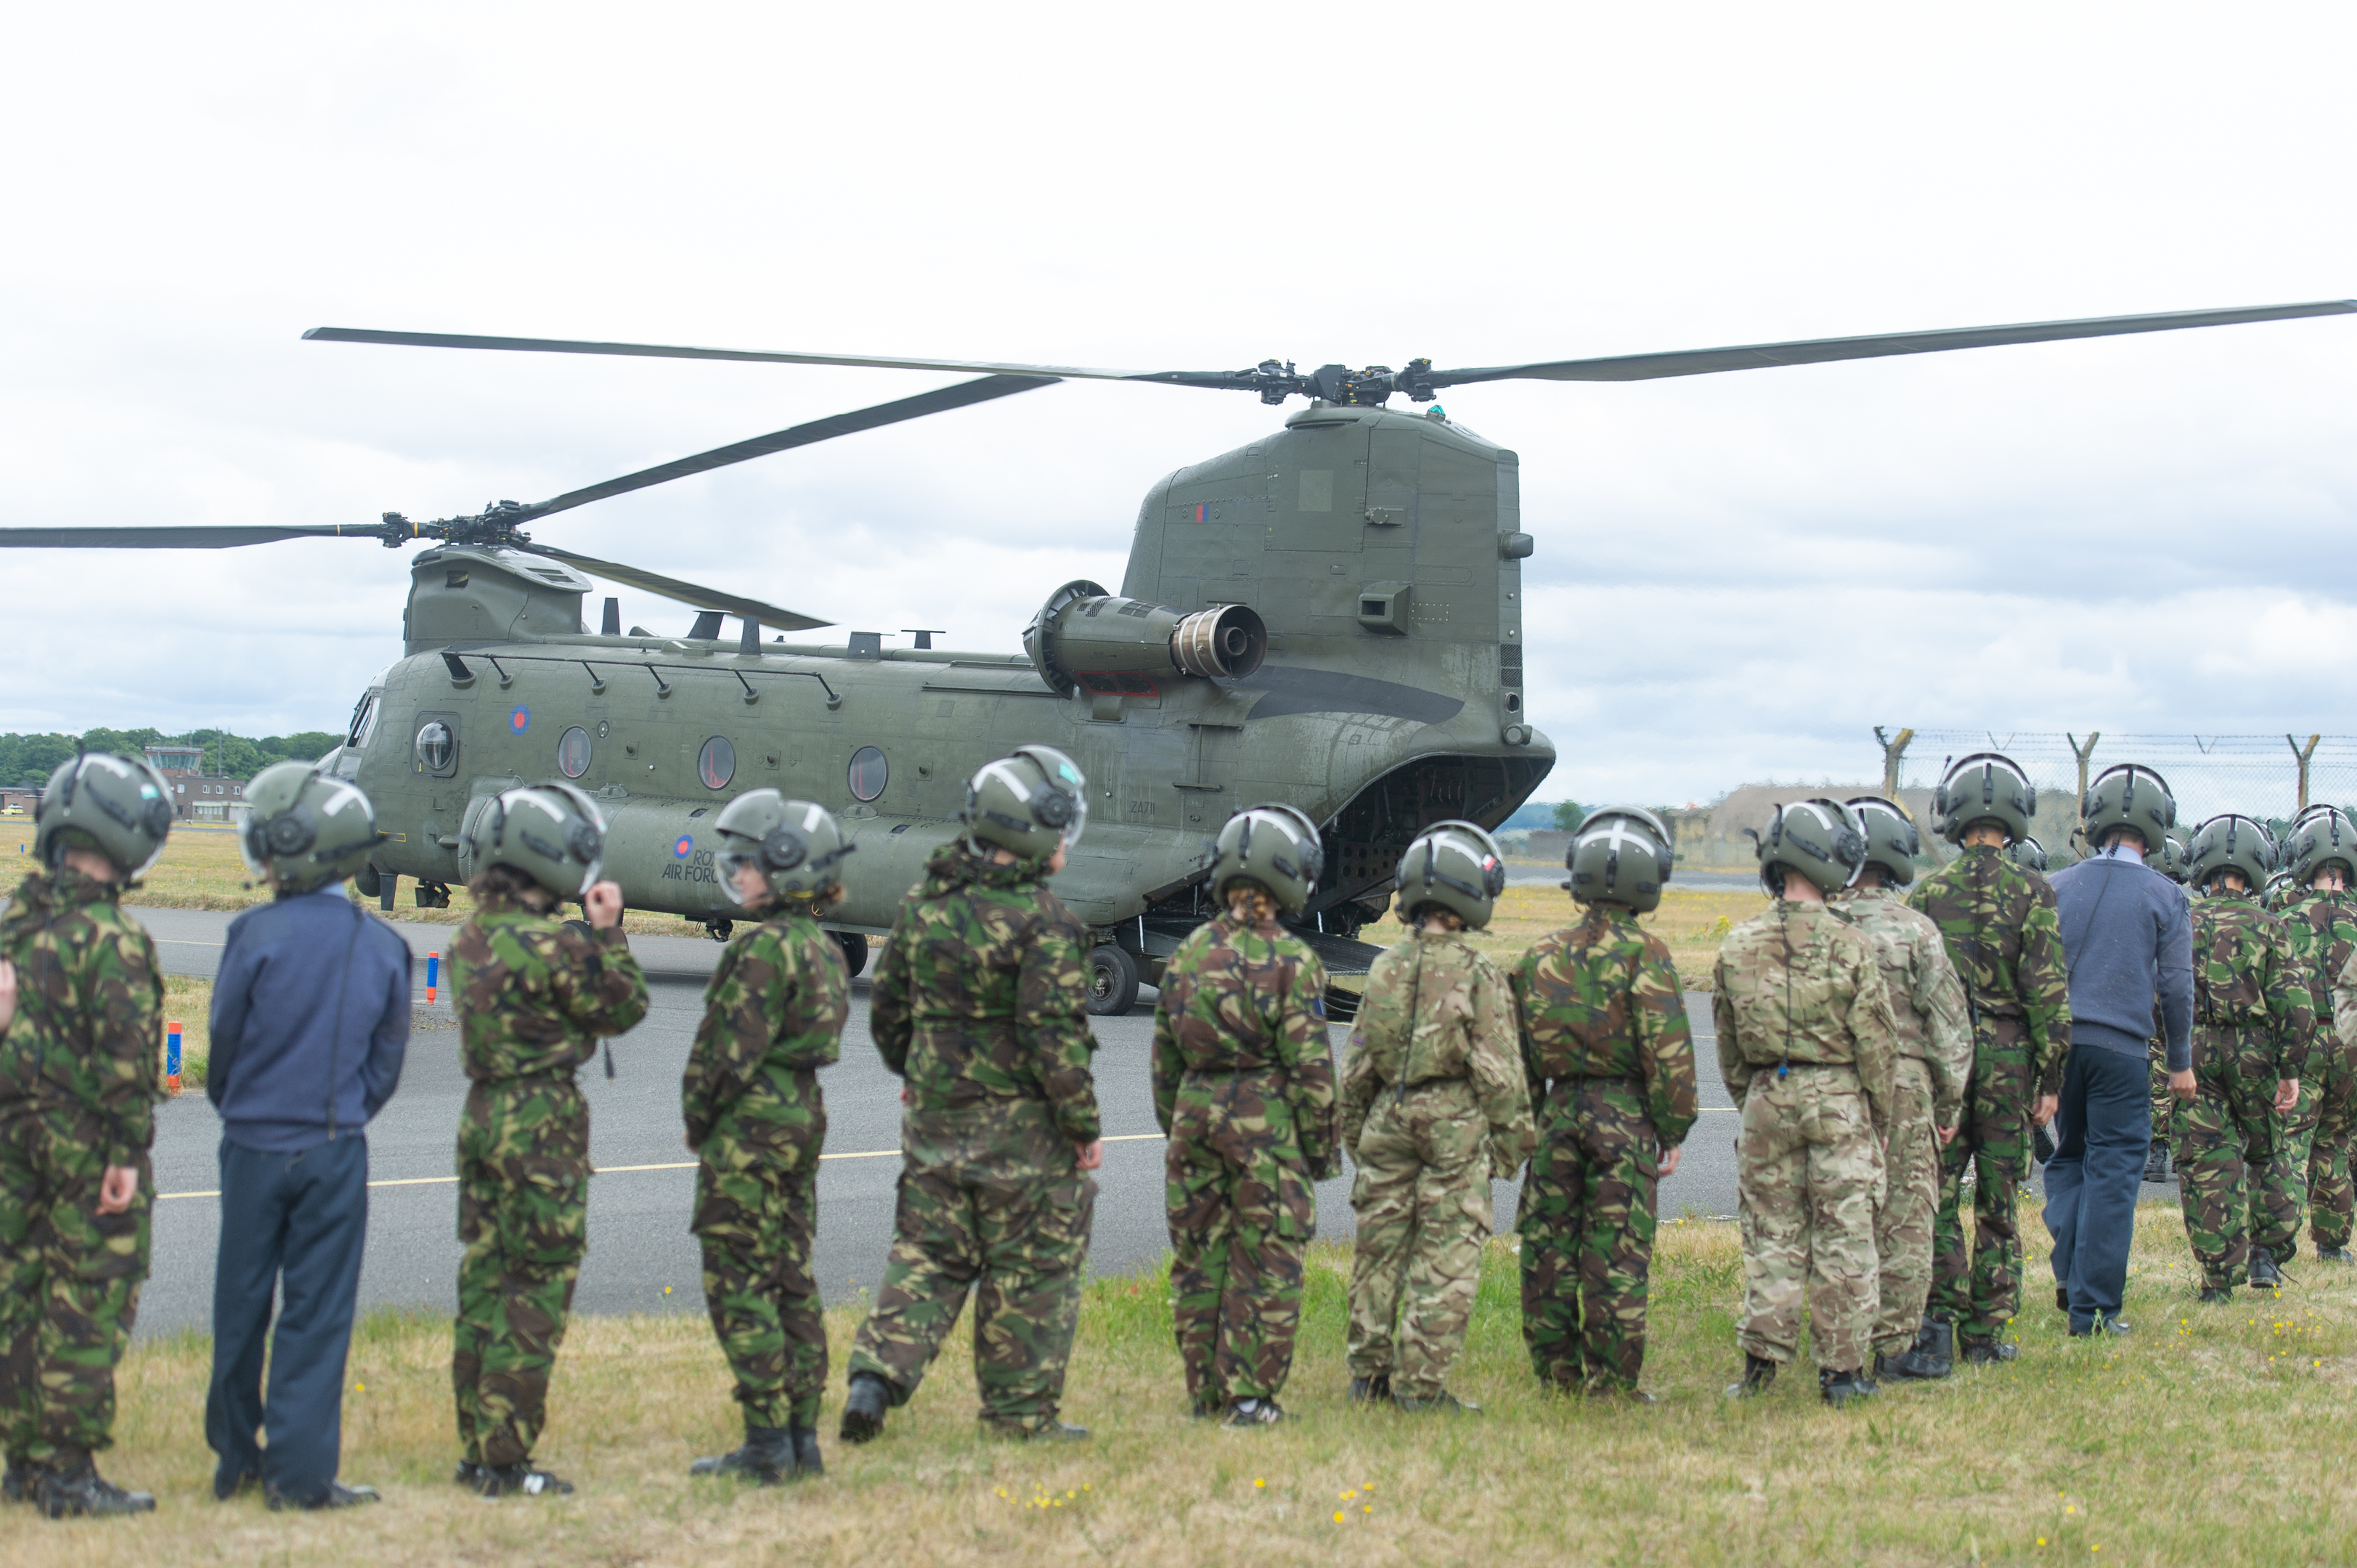 Cadets board  the Chinook ready for departure,